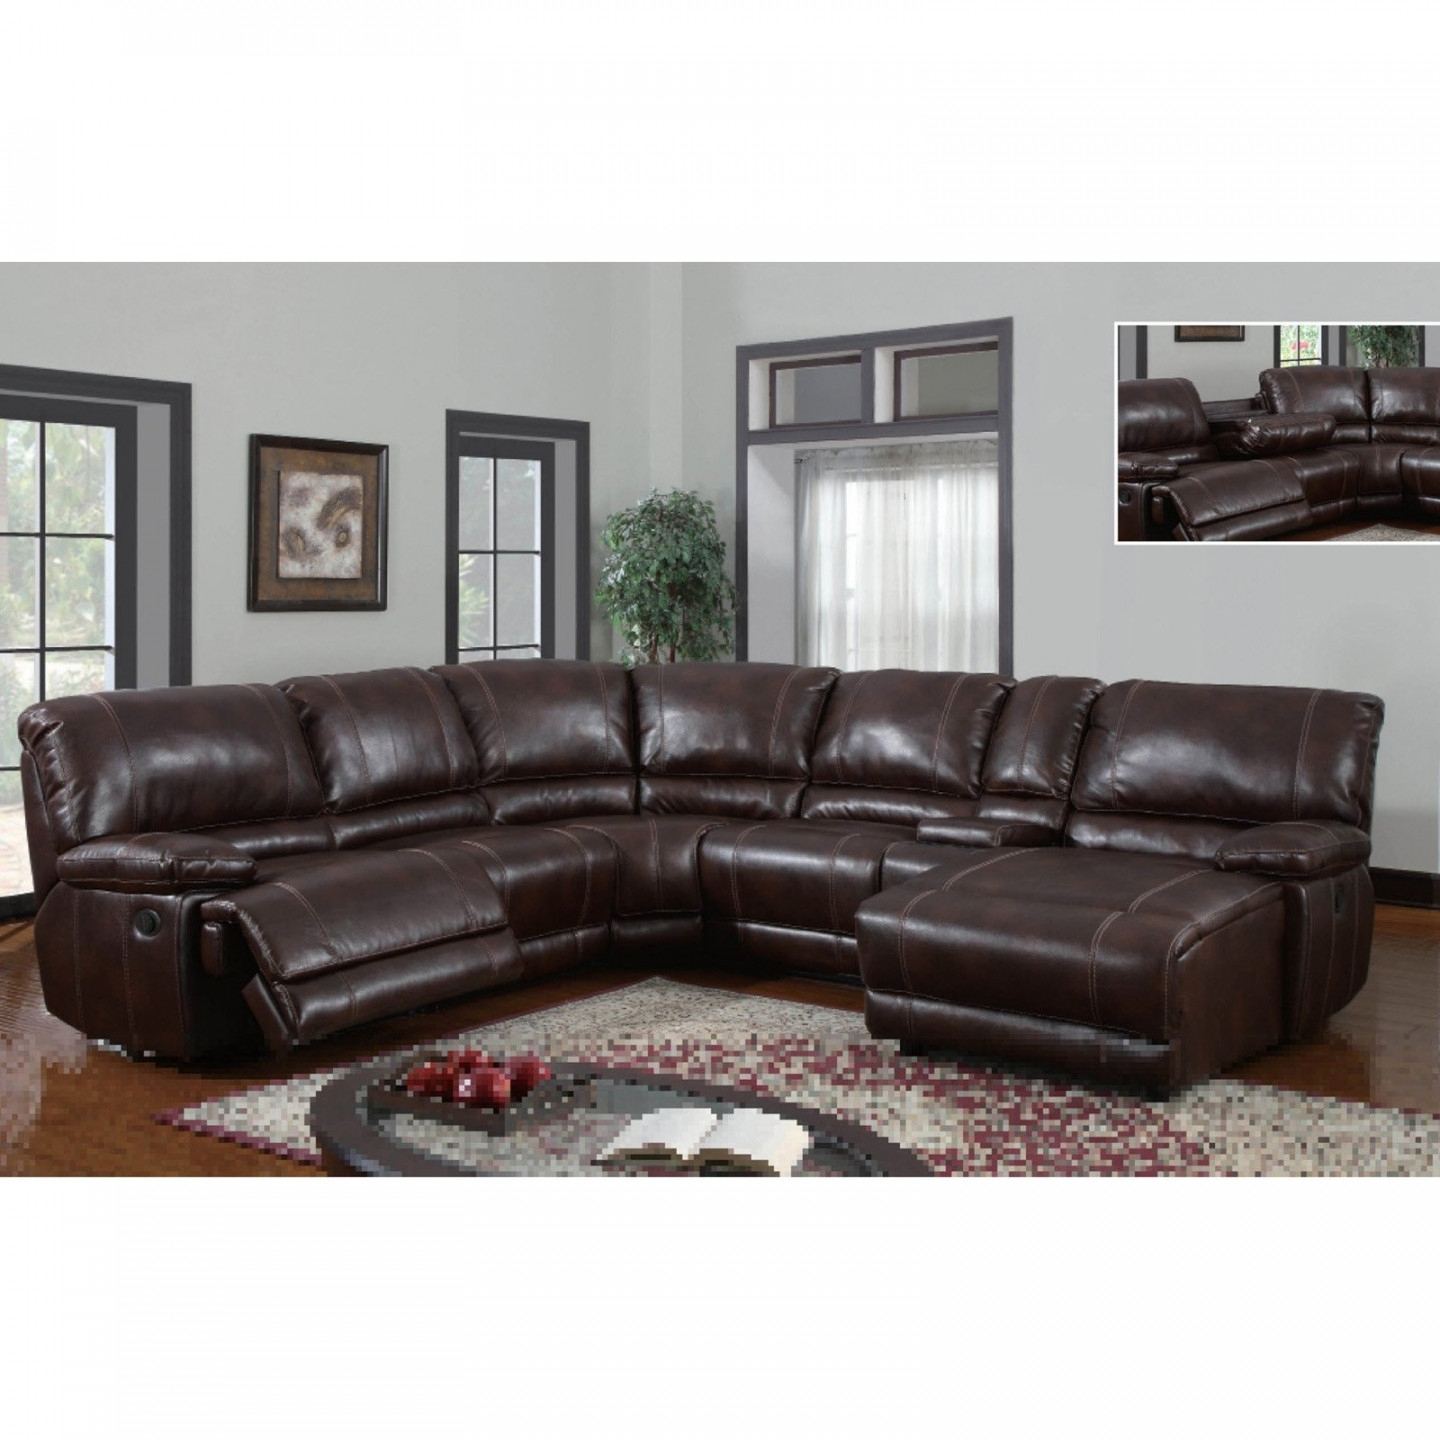 Leather Sectional Sofa With Power Recliner 11 With Leather | Home Inside Sectional Sofas With Power Recliners (View 6 of 10)